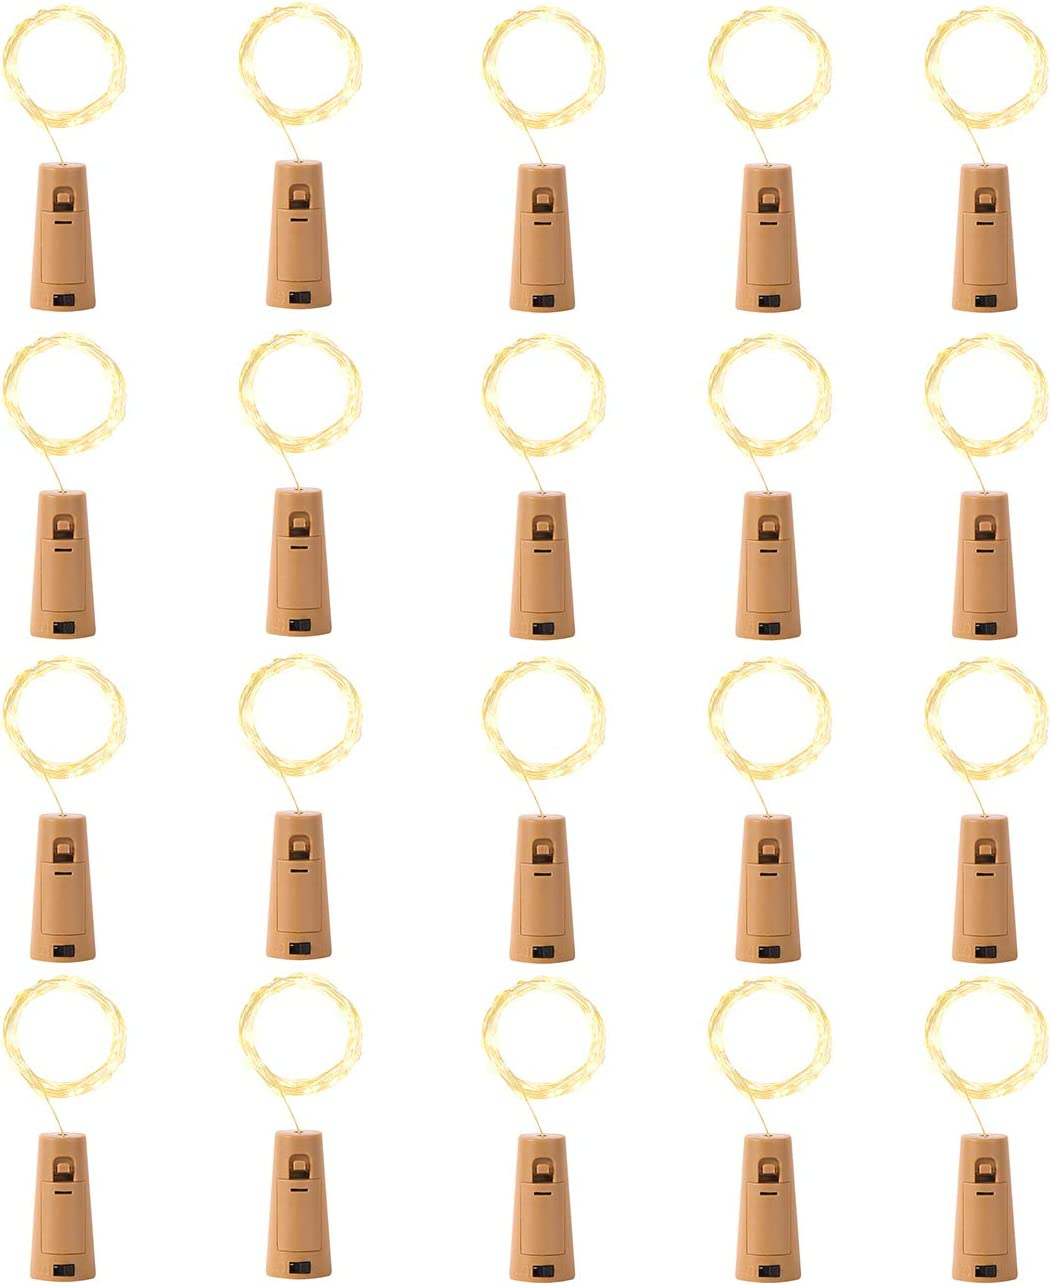 LEDIKON Upgraded 20 Pack 20 LED Wine Bottle Lights with Cork,3.3Ft Silver Wire Warm White Cork Fairy Lights Battery Operated Mini String Lights for Wedding Party Wine Liquor Bottles Crafts Bar Decor